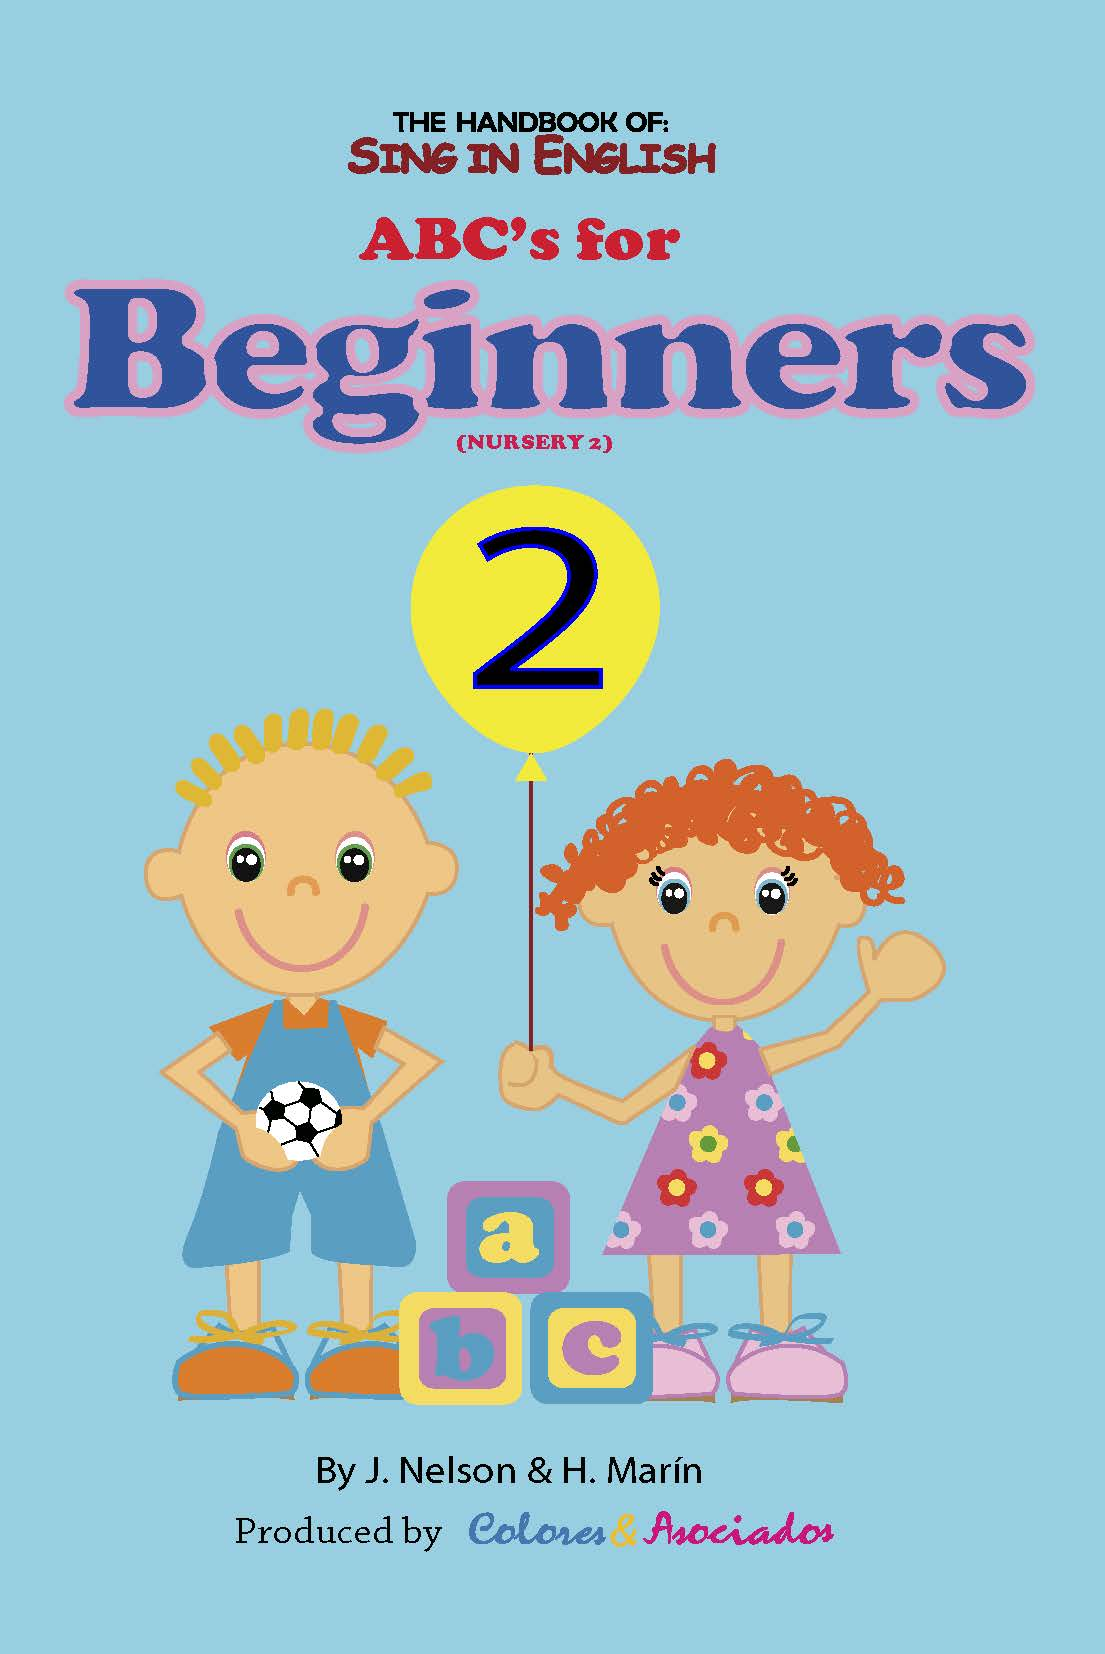 Sing in English ABC's for Beginners Volume 2 Downloadable Album-Book Set